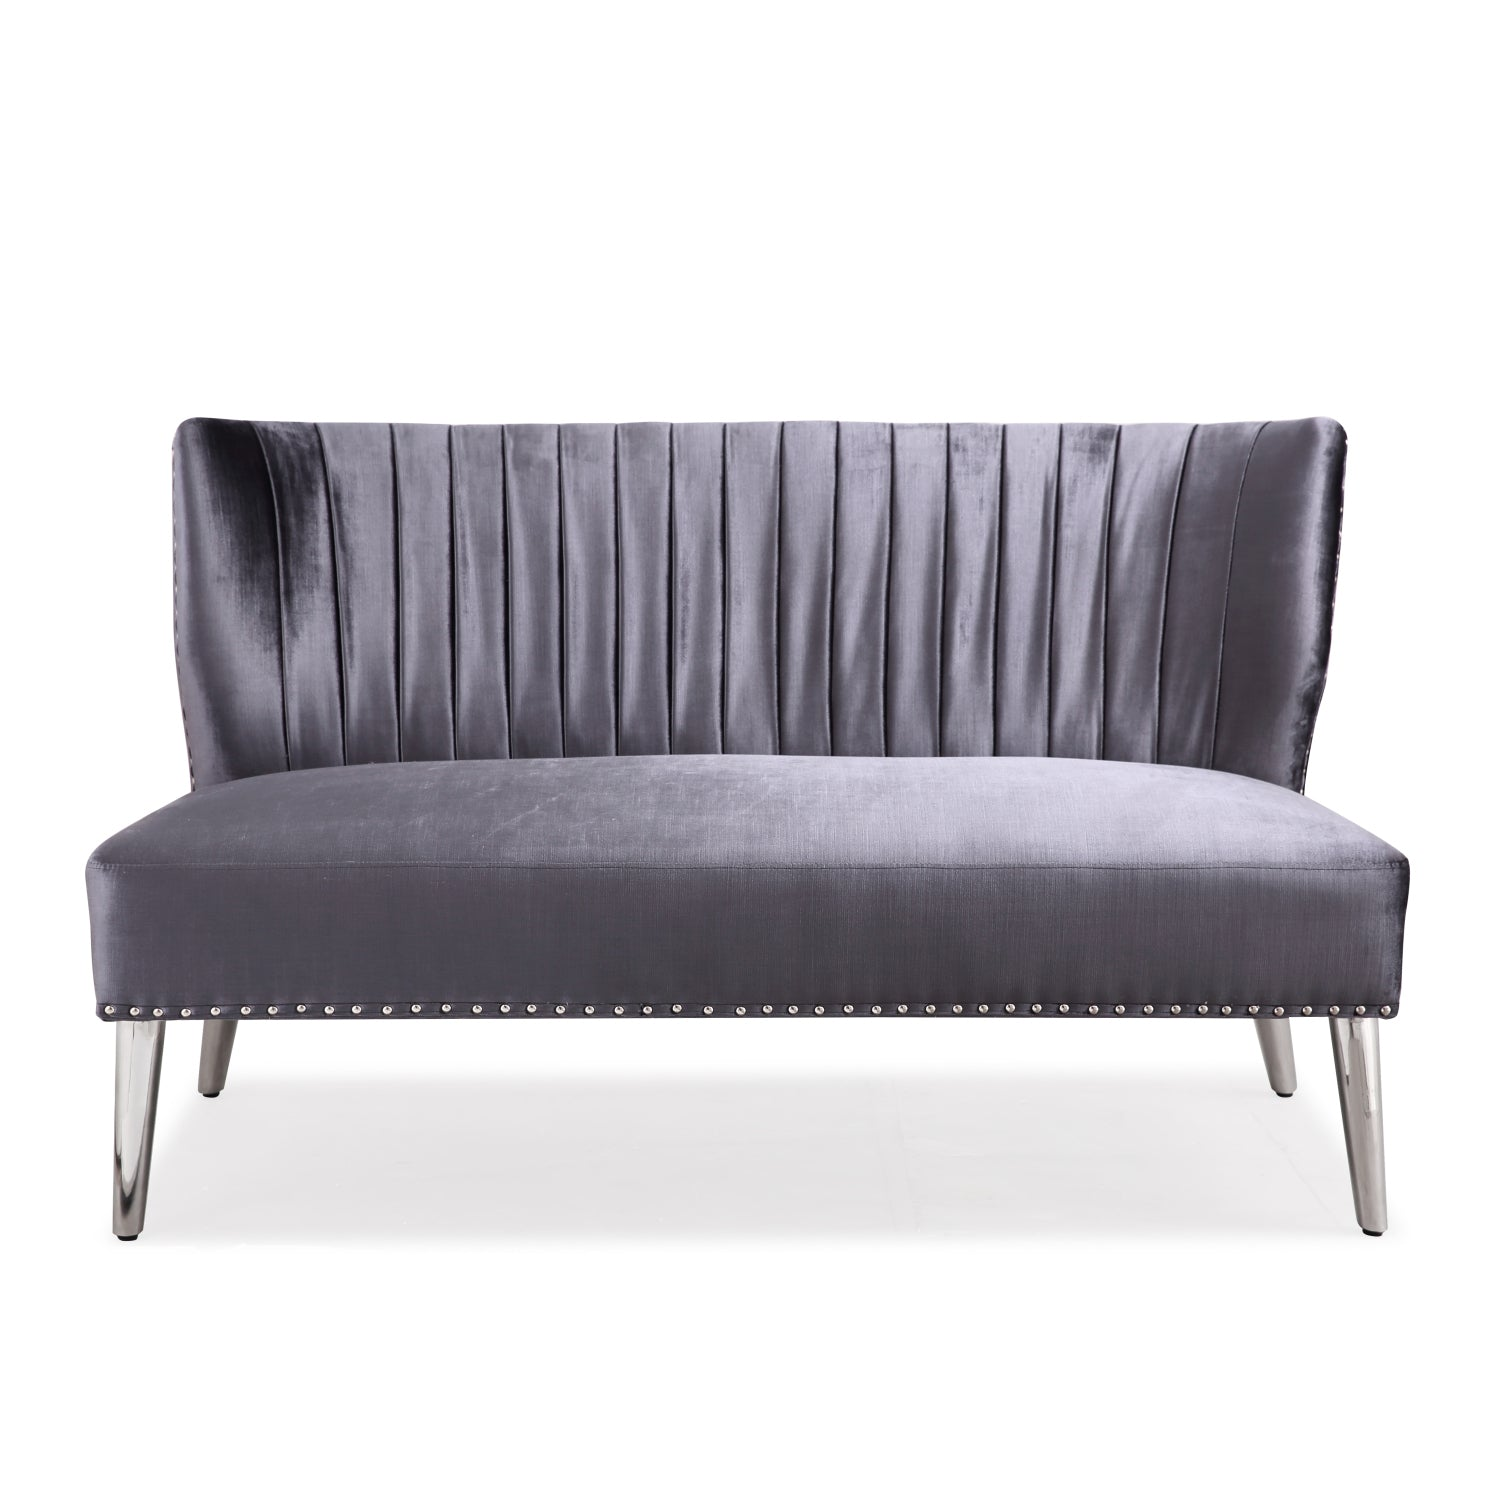 Princess Panel Love seat sofa - Perfectly Home Interiors